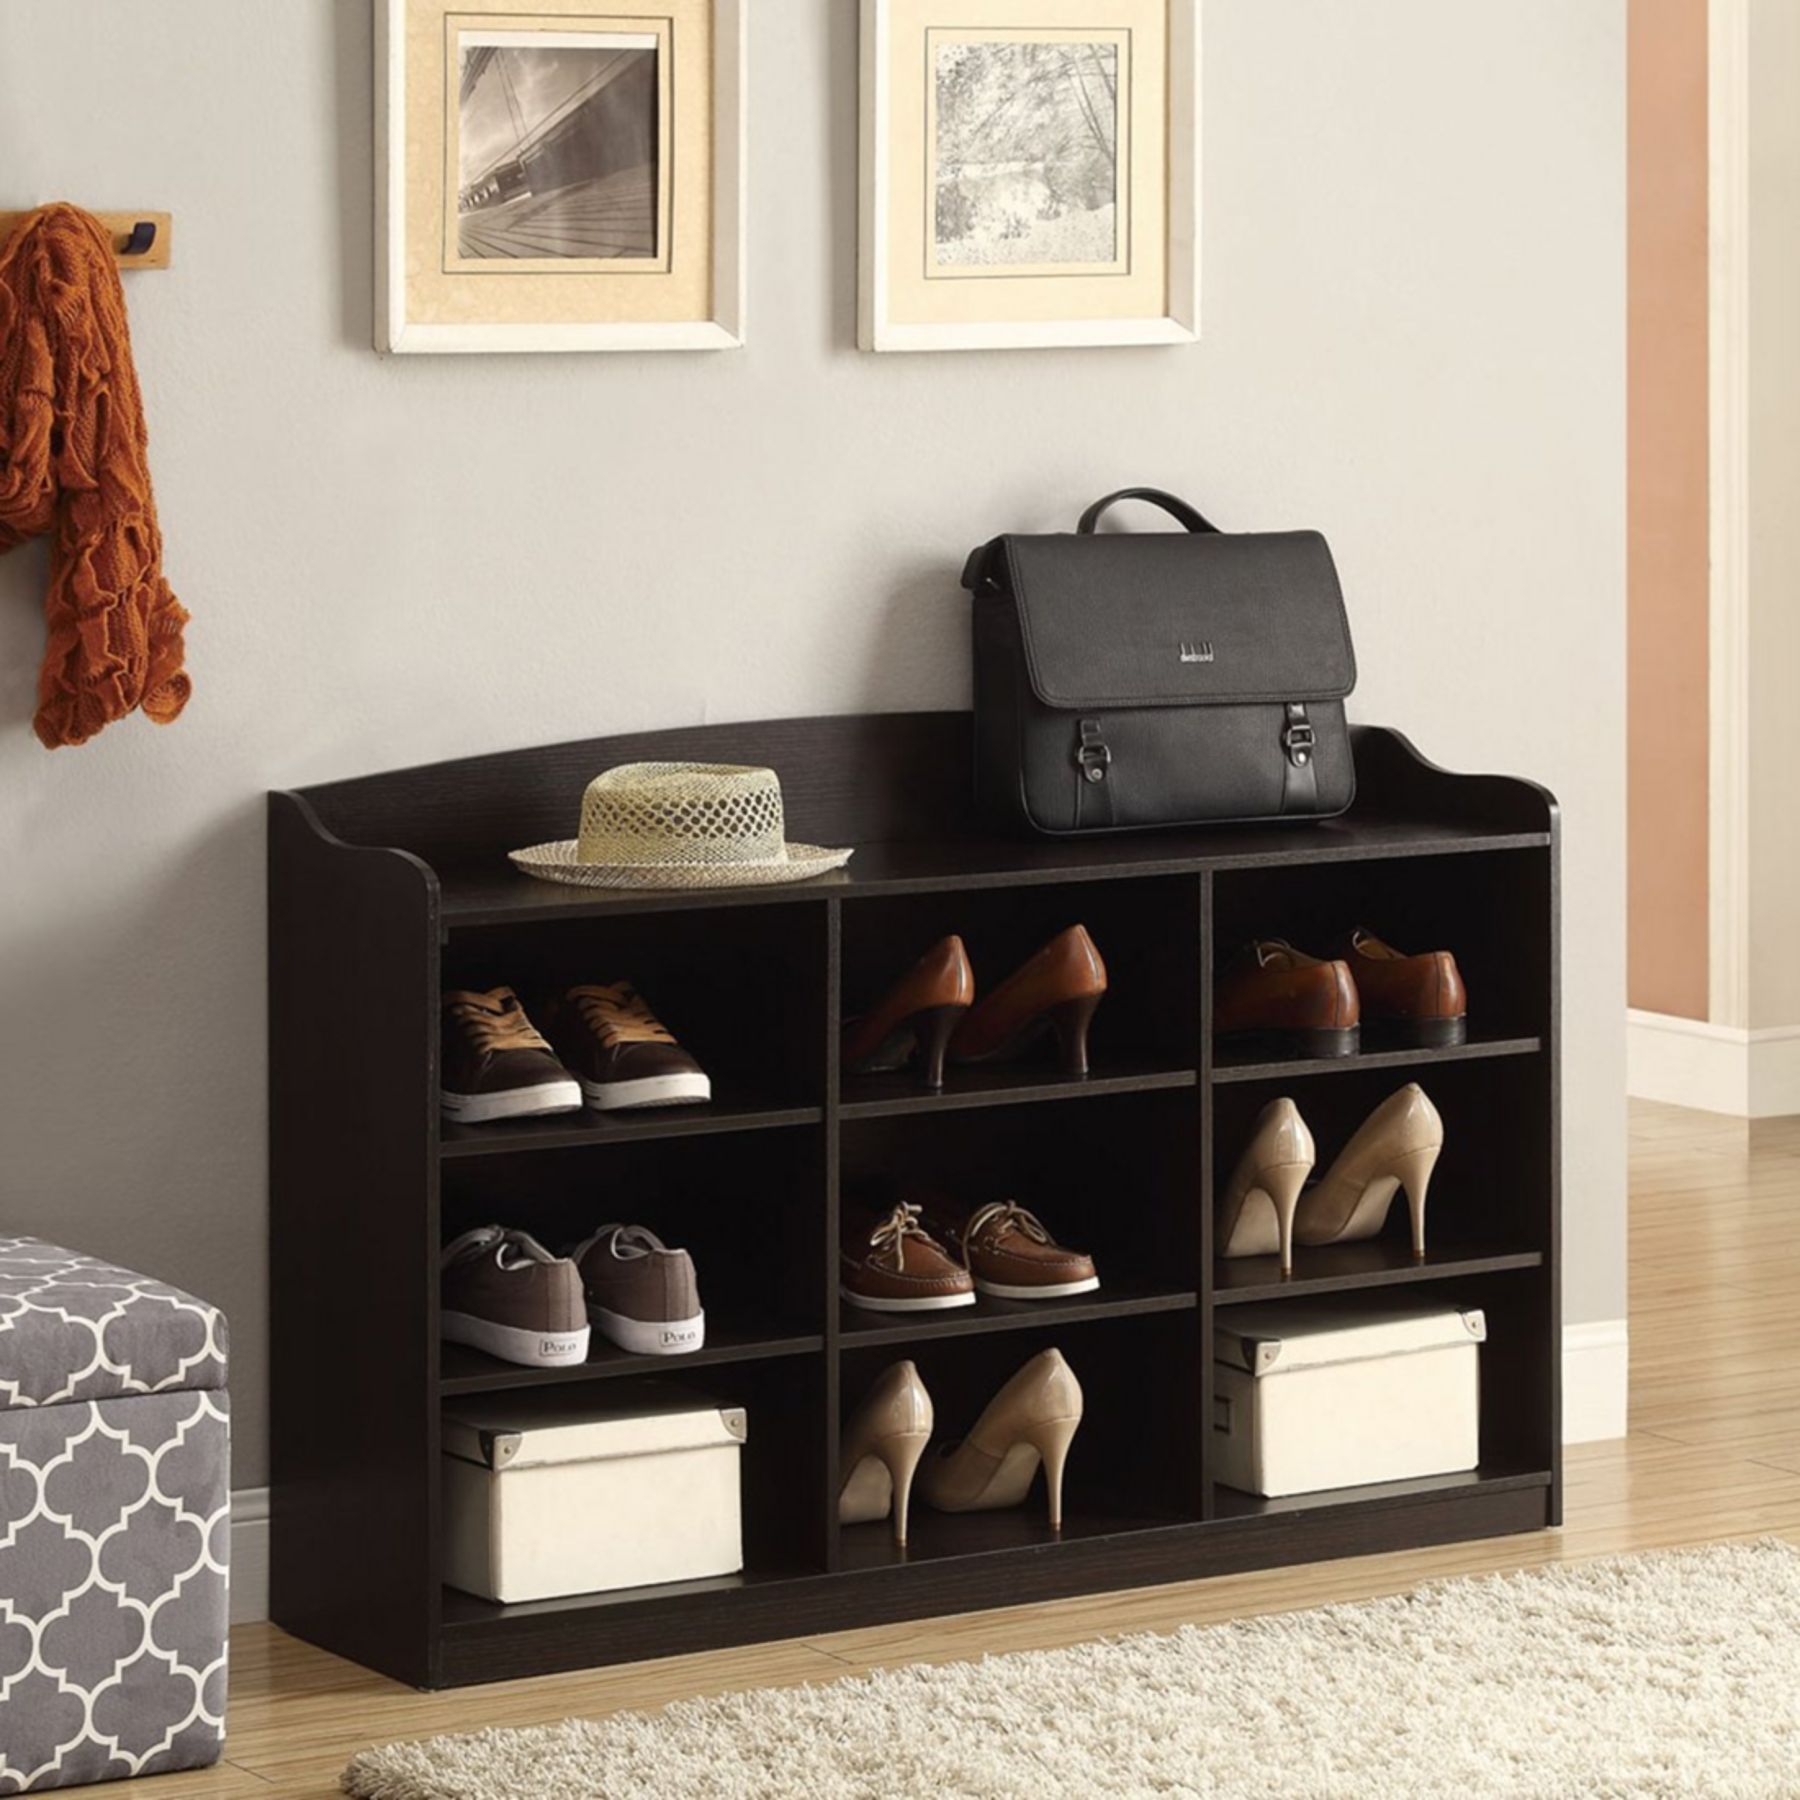 10 simple and cozy wooden shoe rack design ideas you must on wood shoe rack diy simple id=85338